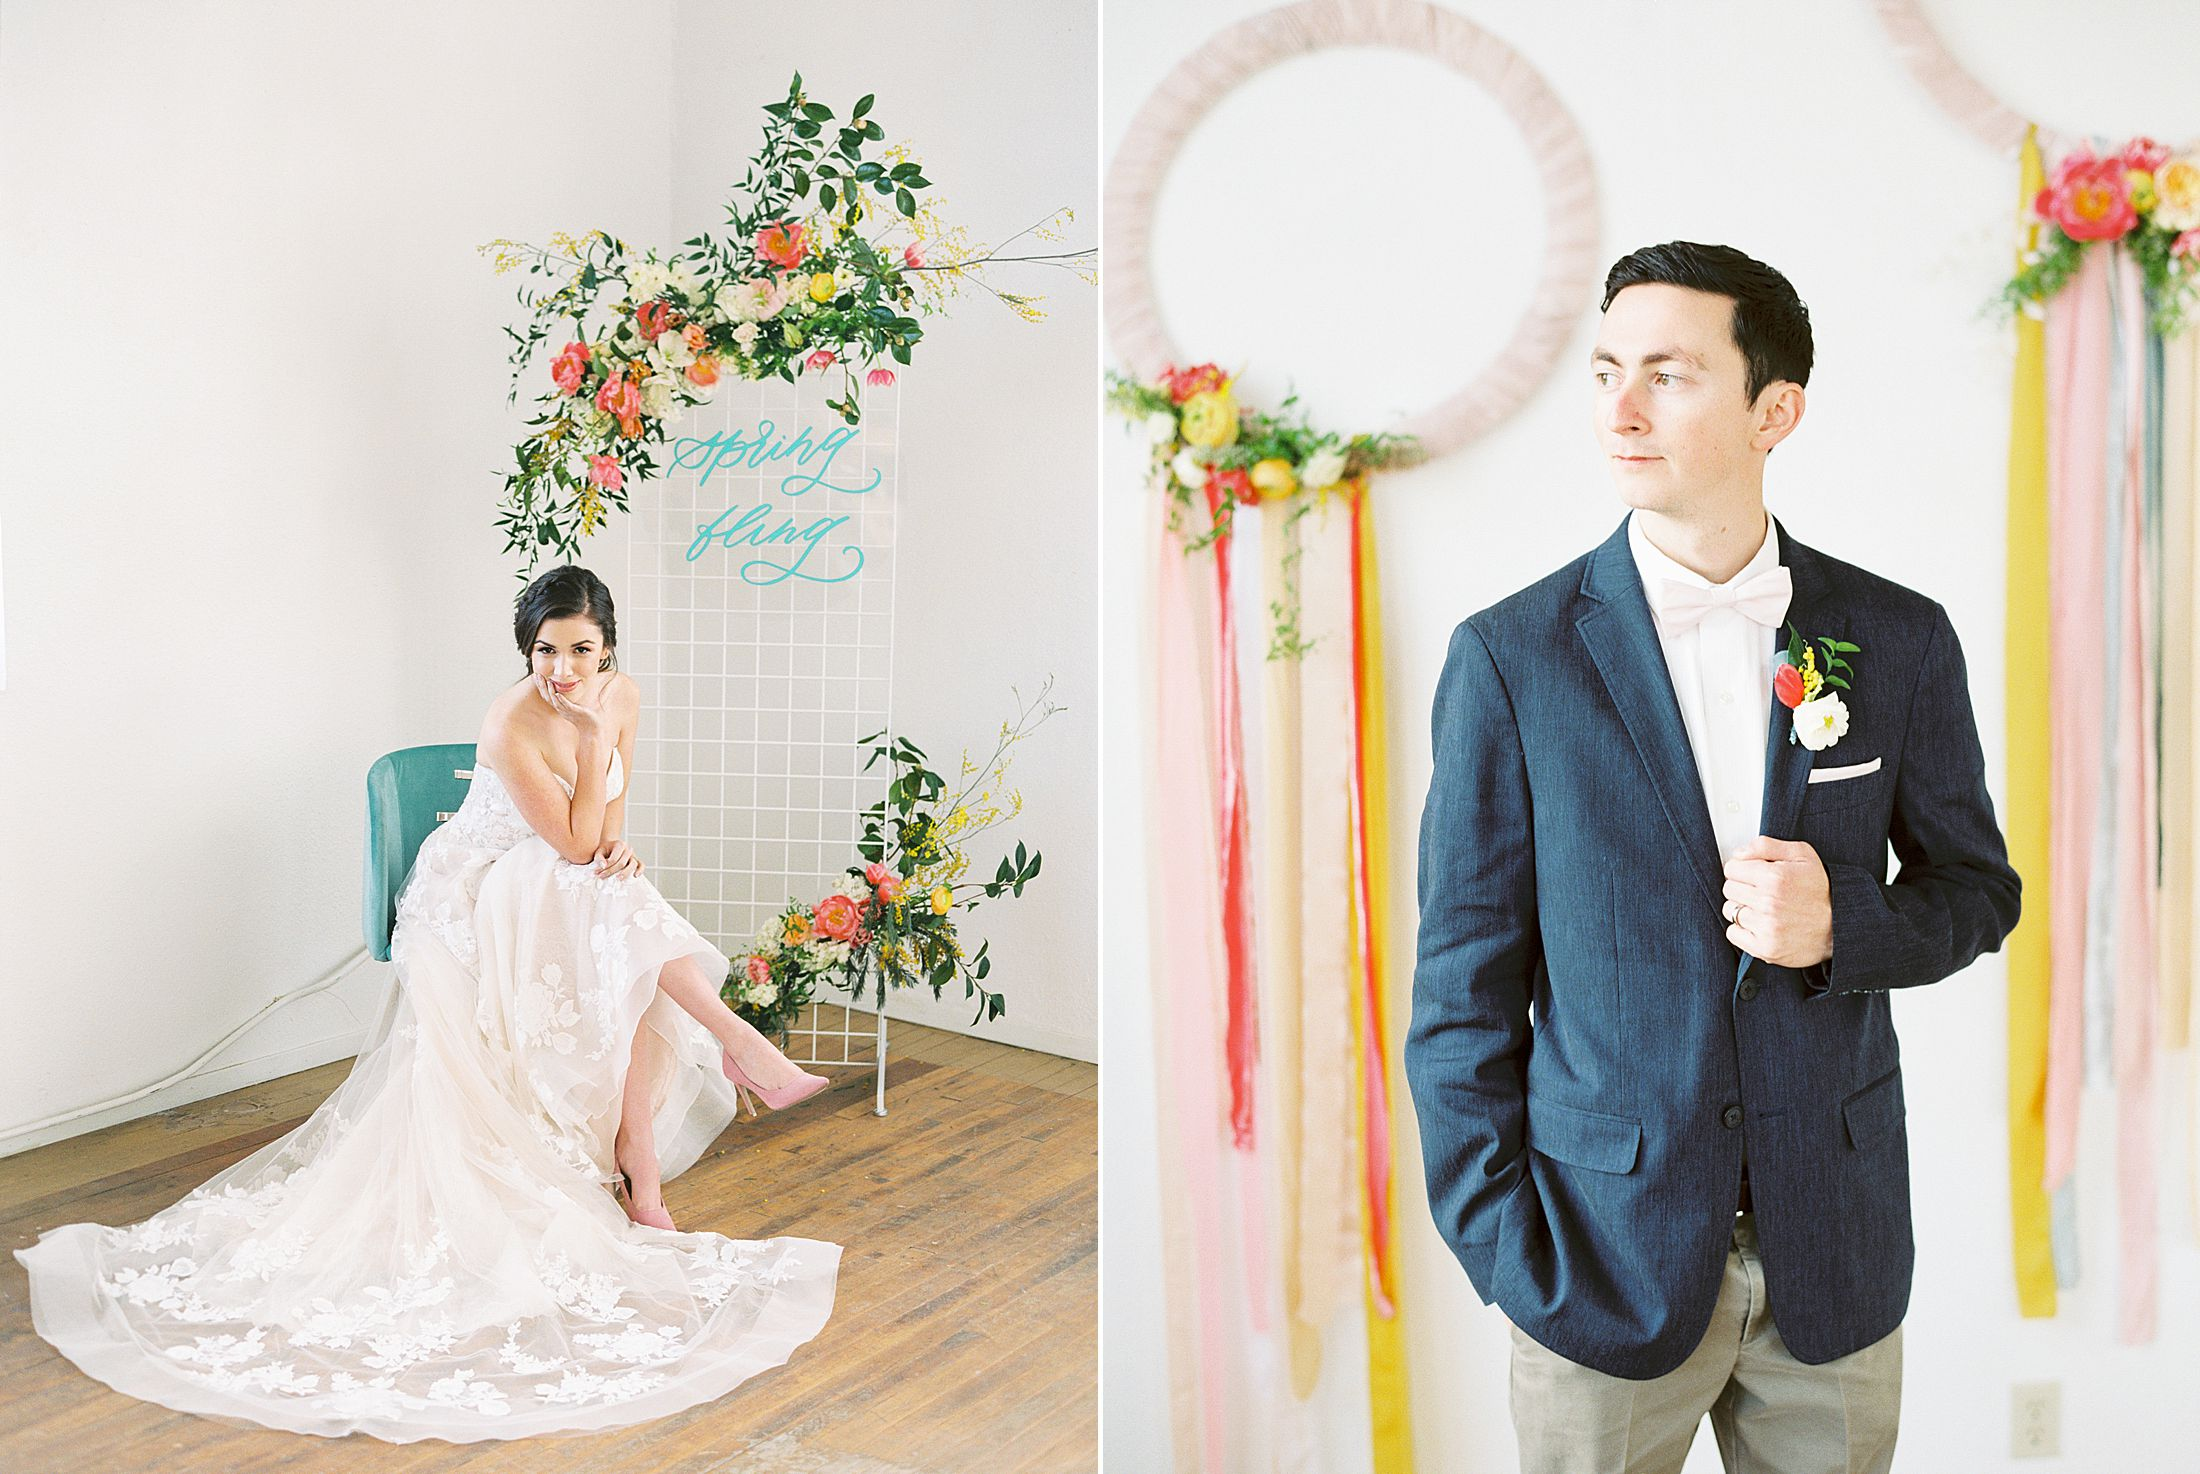 Bay Area Spring Wedding Inspiration - Ashley Baumgartner - Inspired By This - Party Crush Studio and Lens of Lenox Videography - Bay Area Wedding Photography_0043.jpg